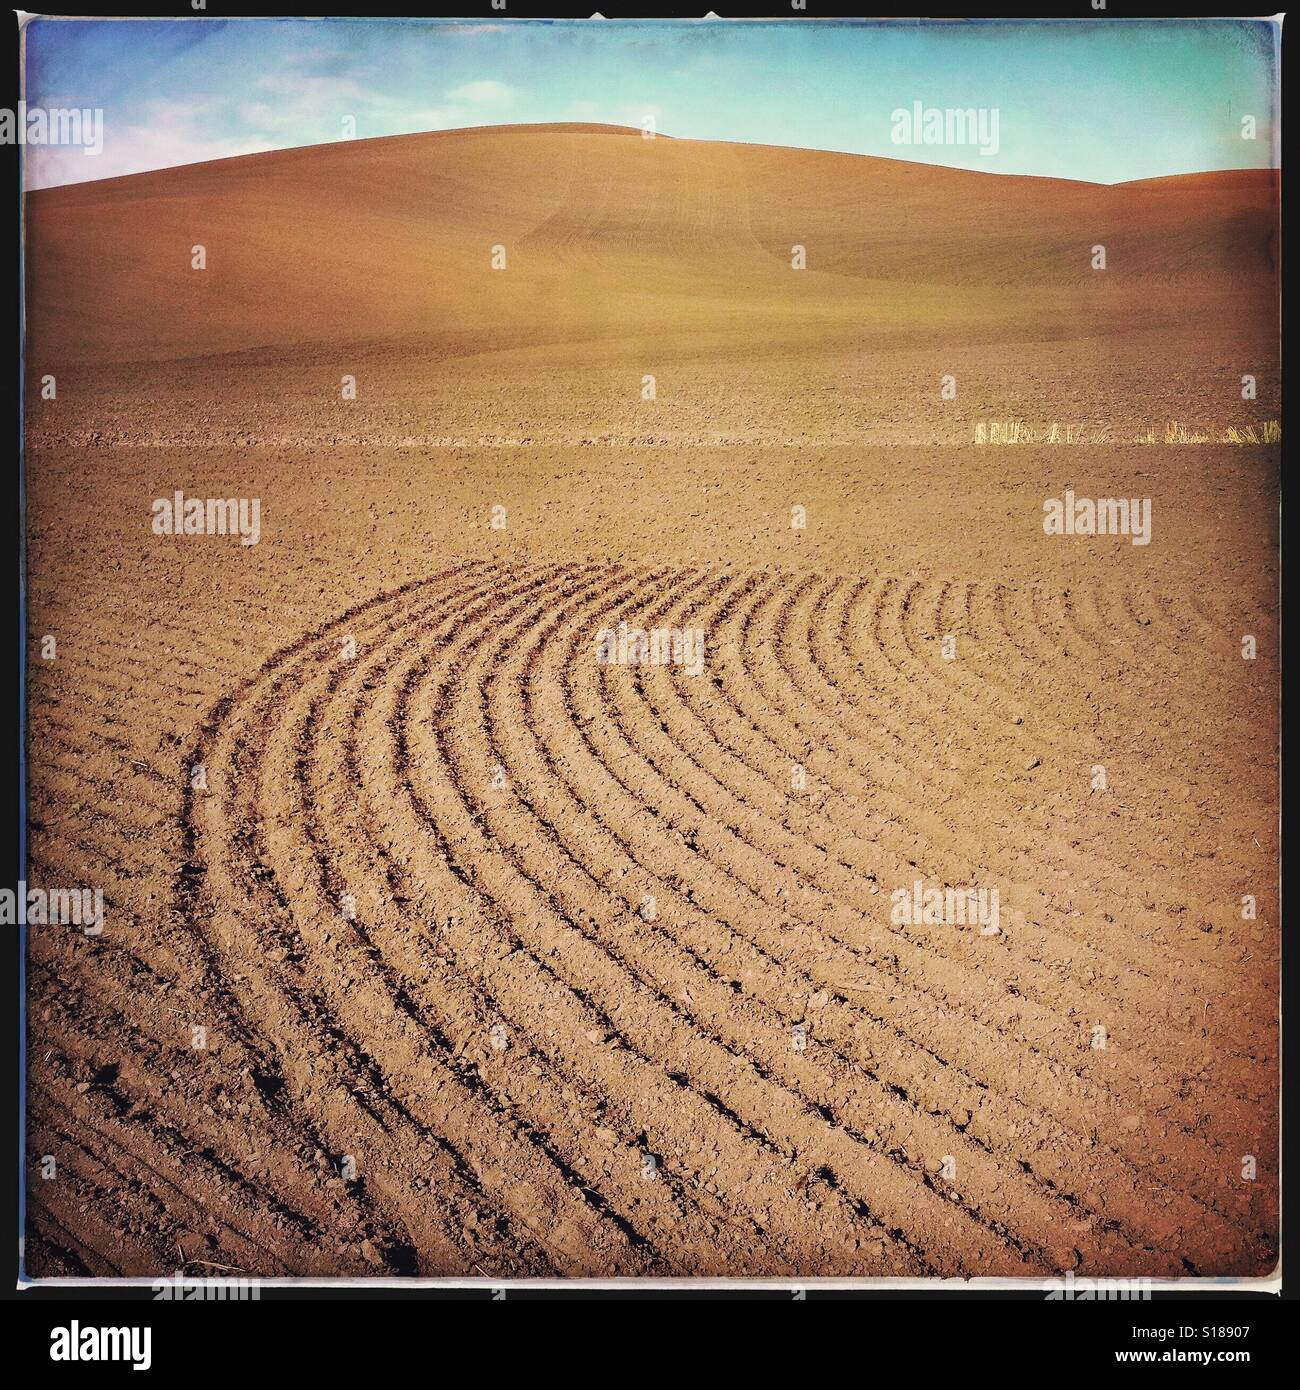 Plowed wheat field in late autumn in the Palouse region of Washington State, USA Stock Photo